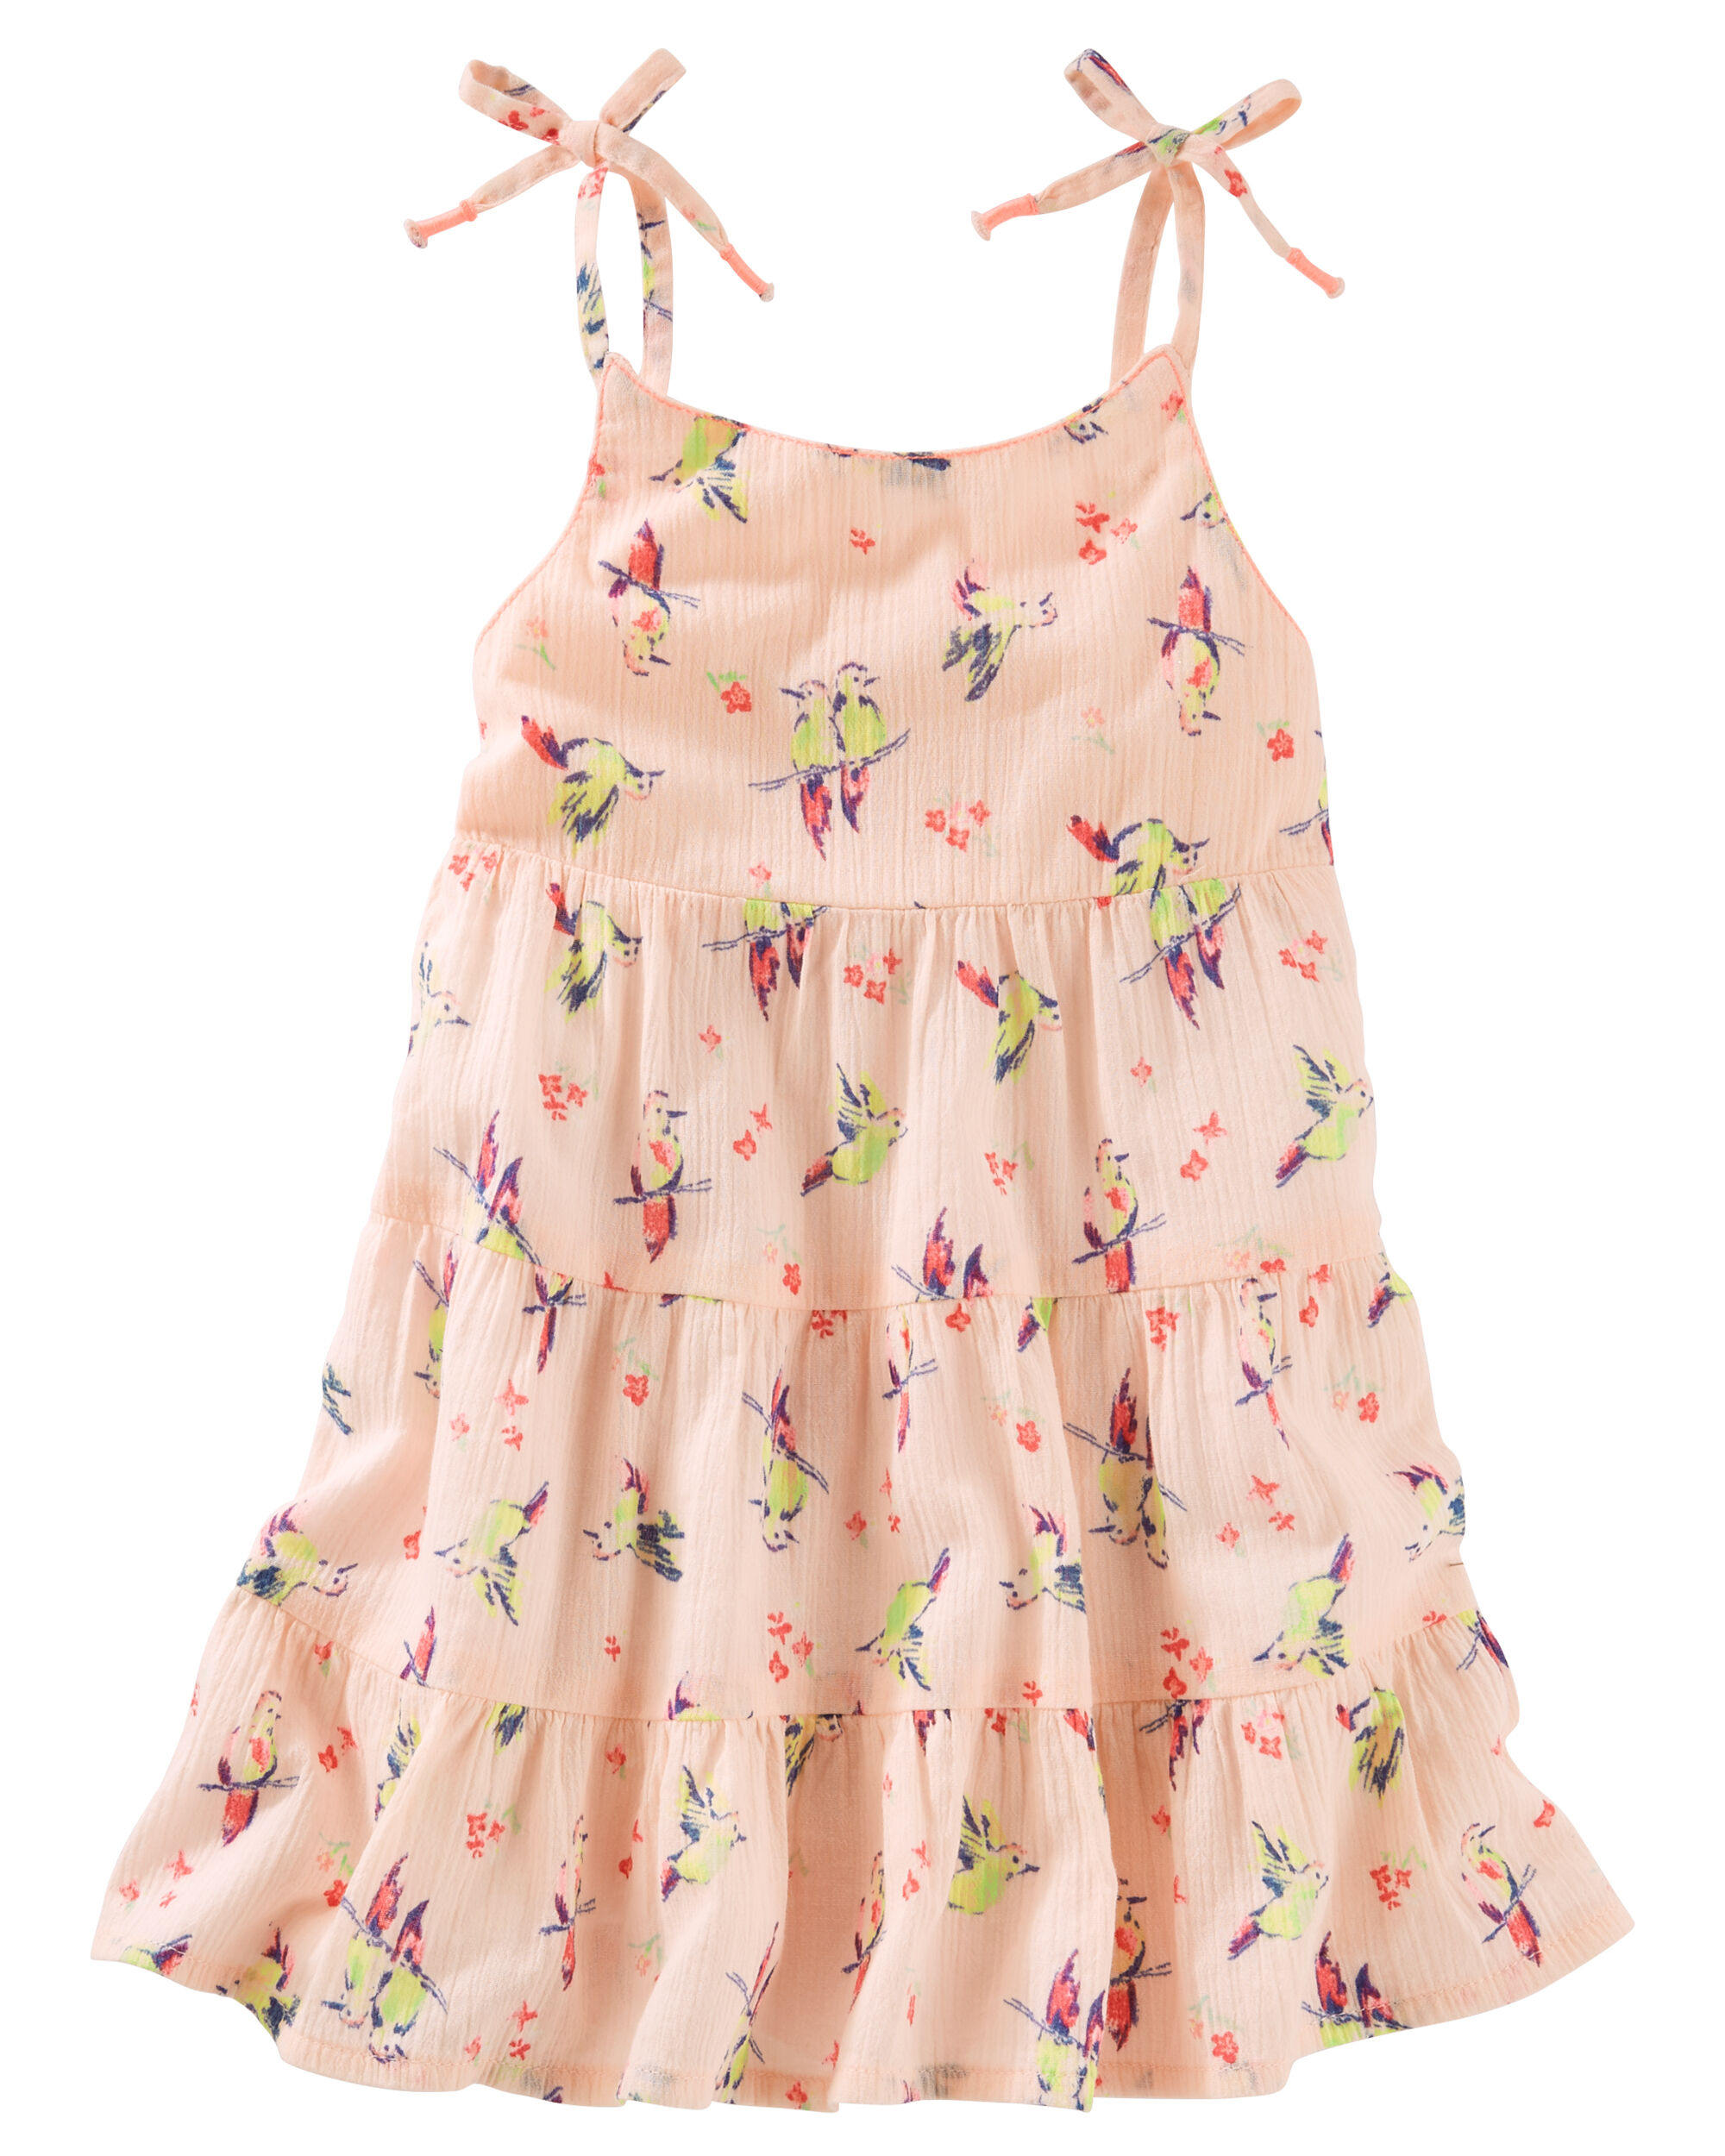 2 Piece Tiered Ruffle Hummingbird Print Dress